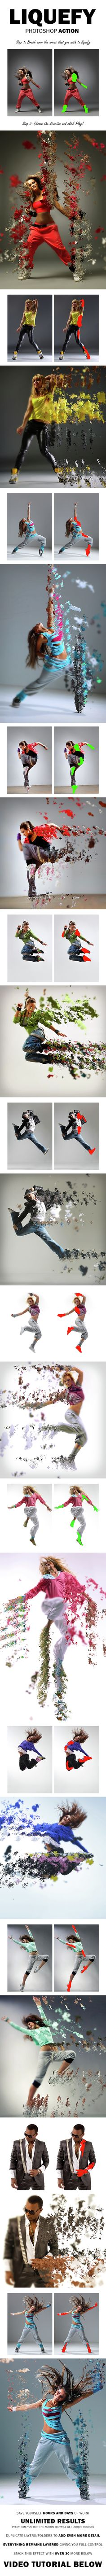 Liquefy Photoshop Action - Photo Effects Actions